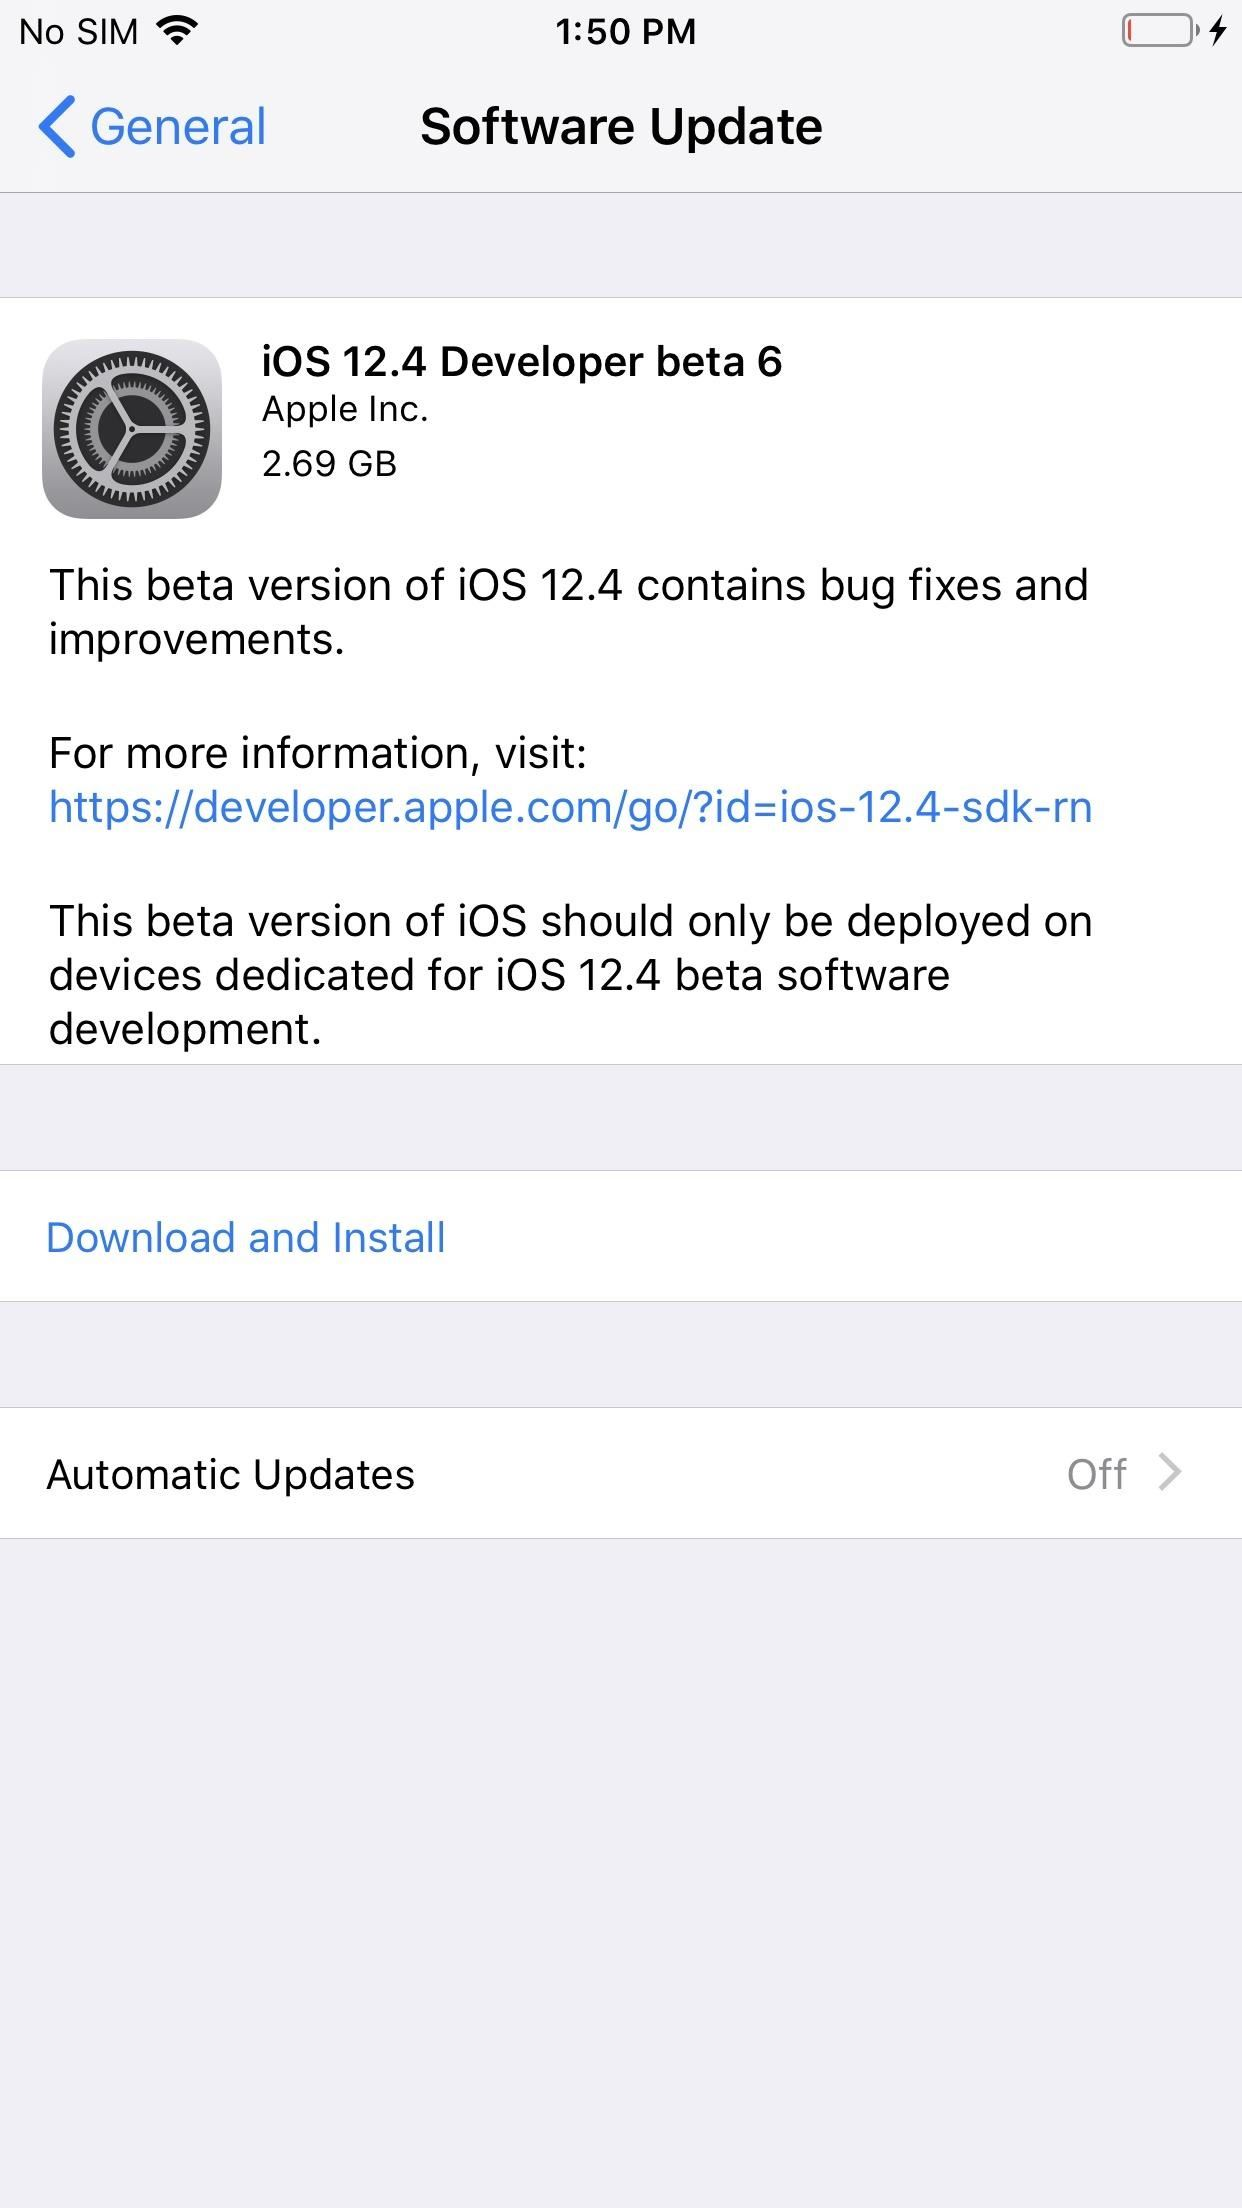 Apple just released iOS 12.4 Developer Beta 6 for iPhone